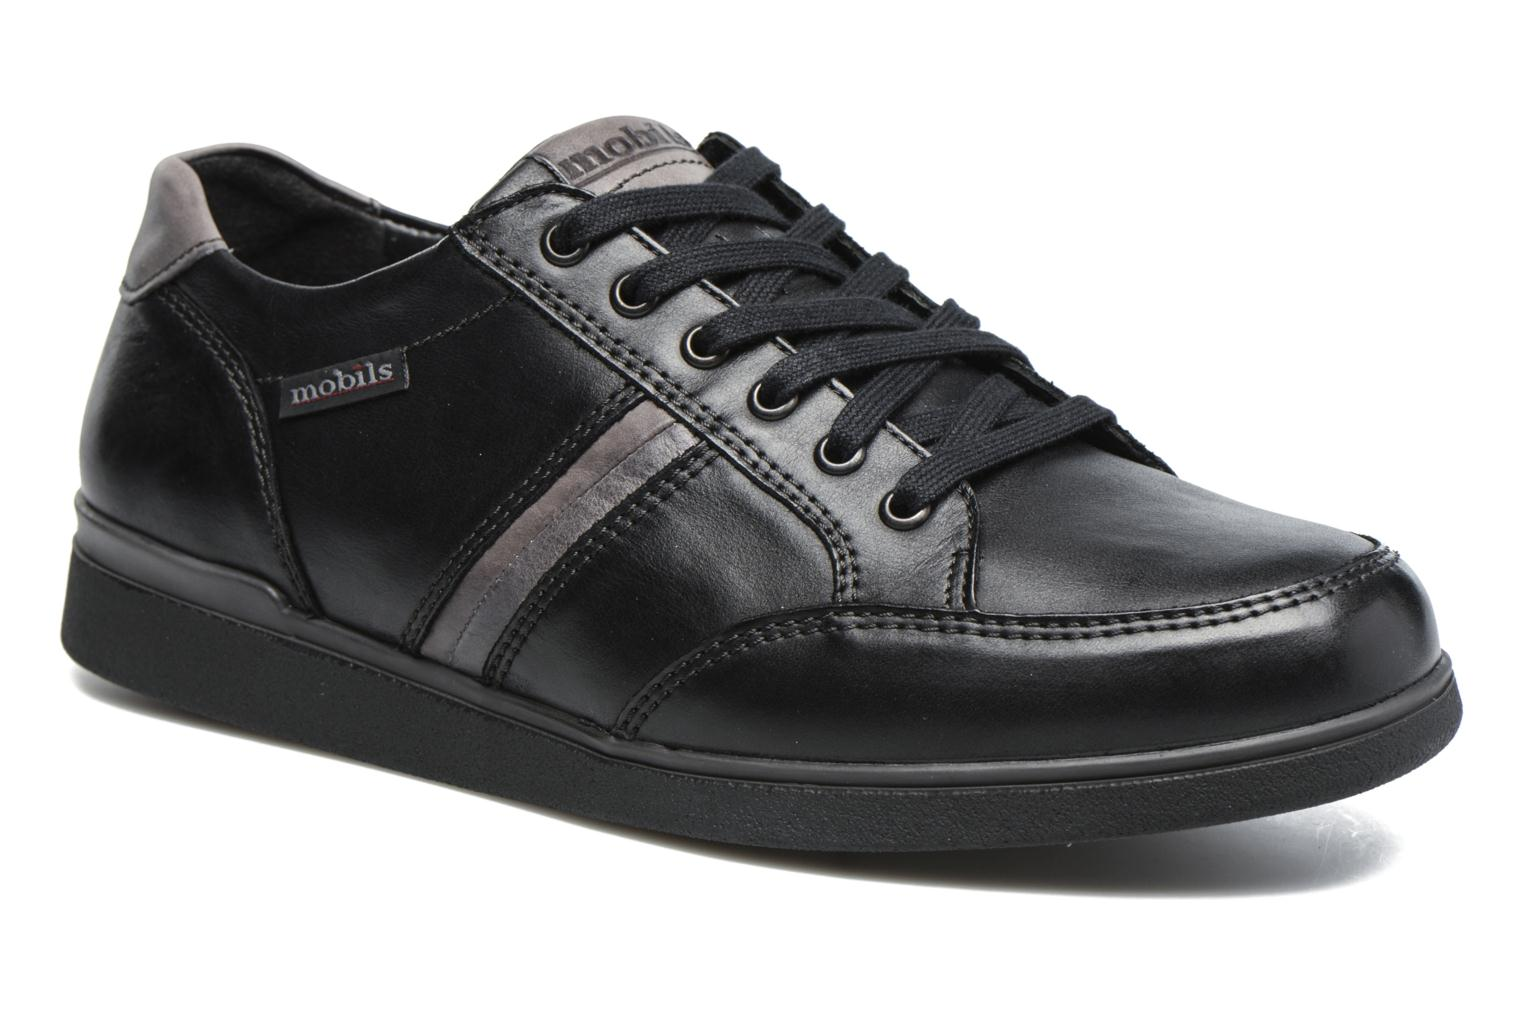 Marques Chaussure homme Mephisto homme Nardo Black